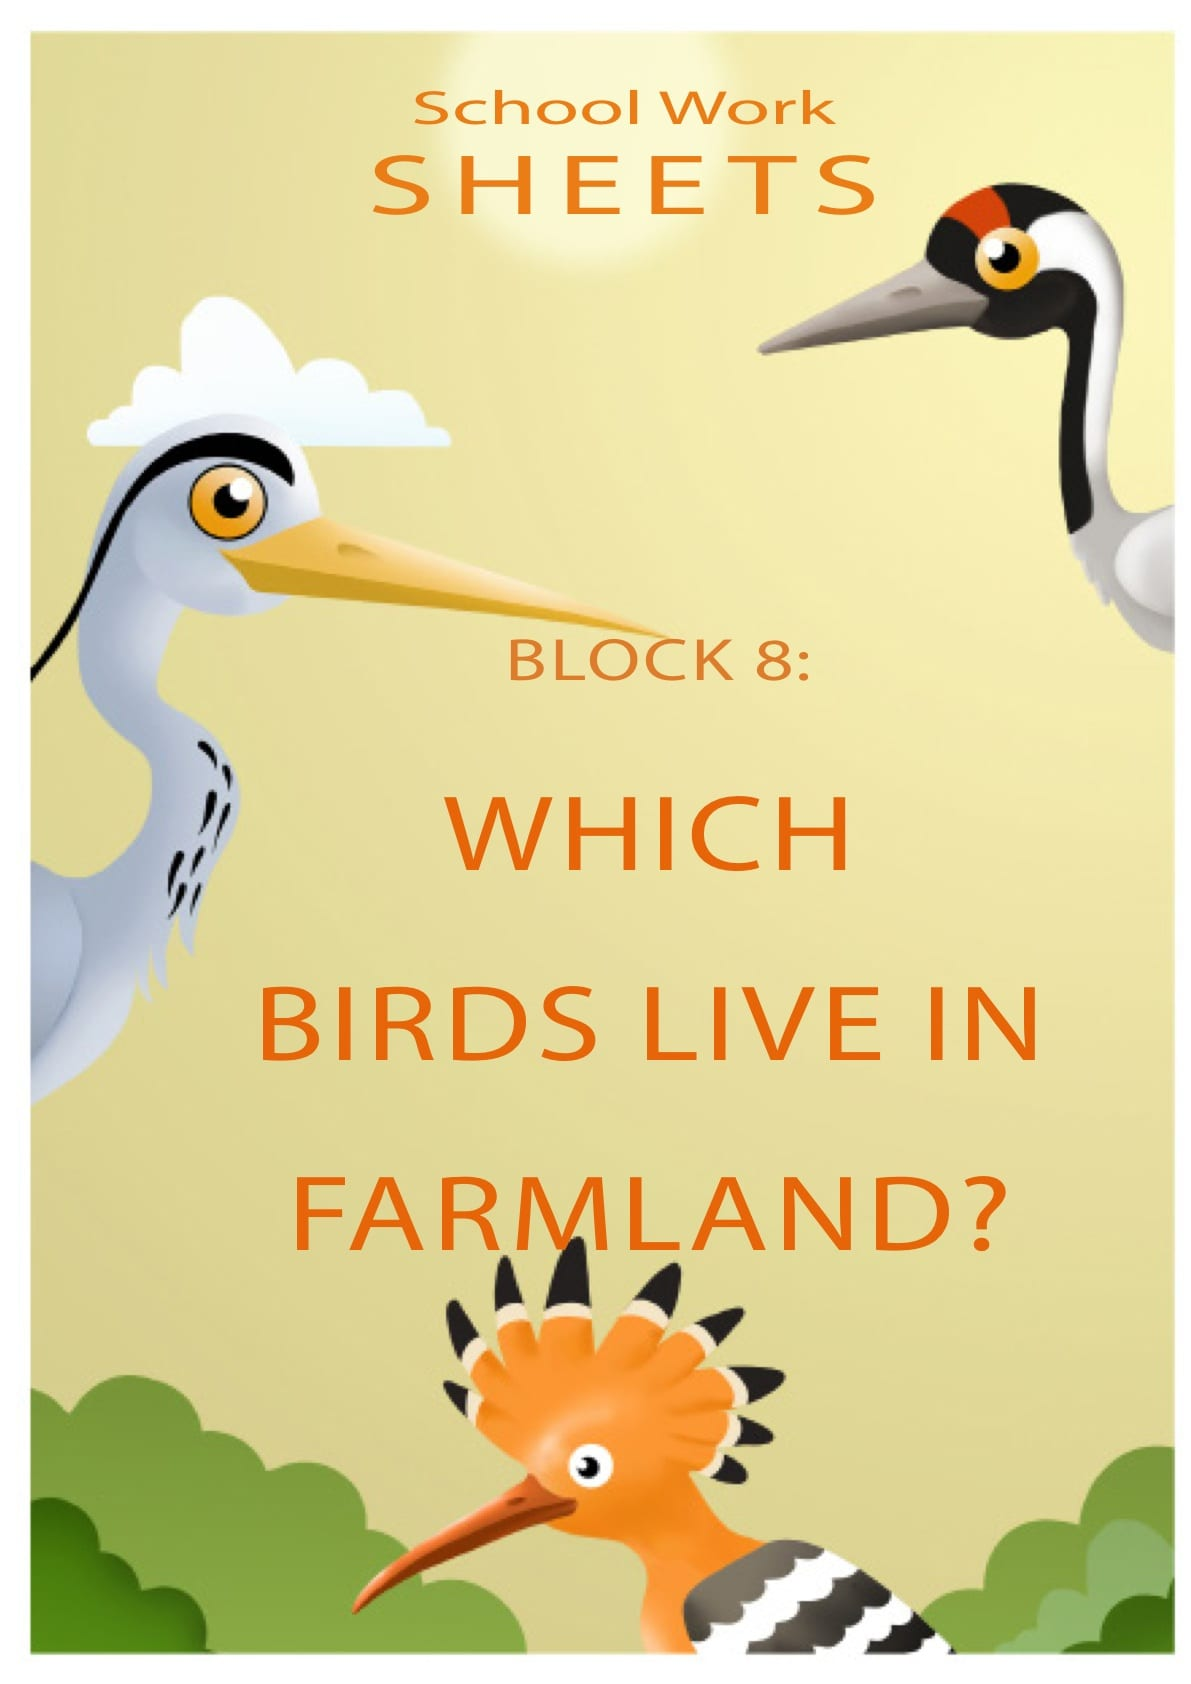 Which birds live in farmland?